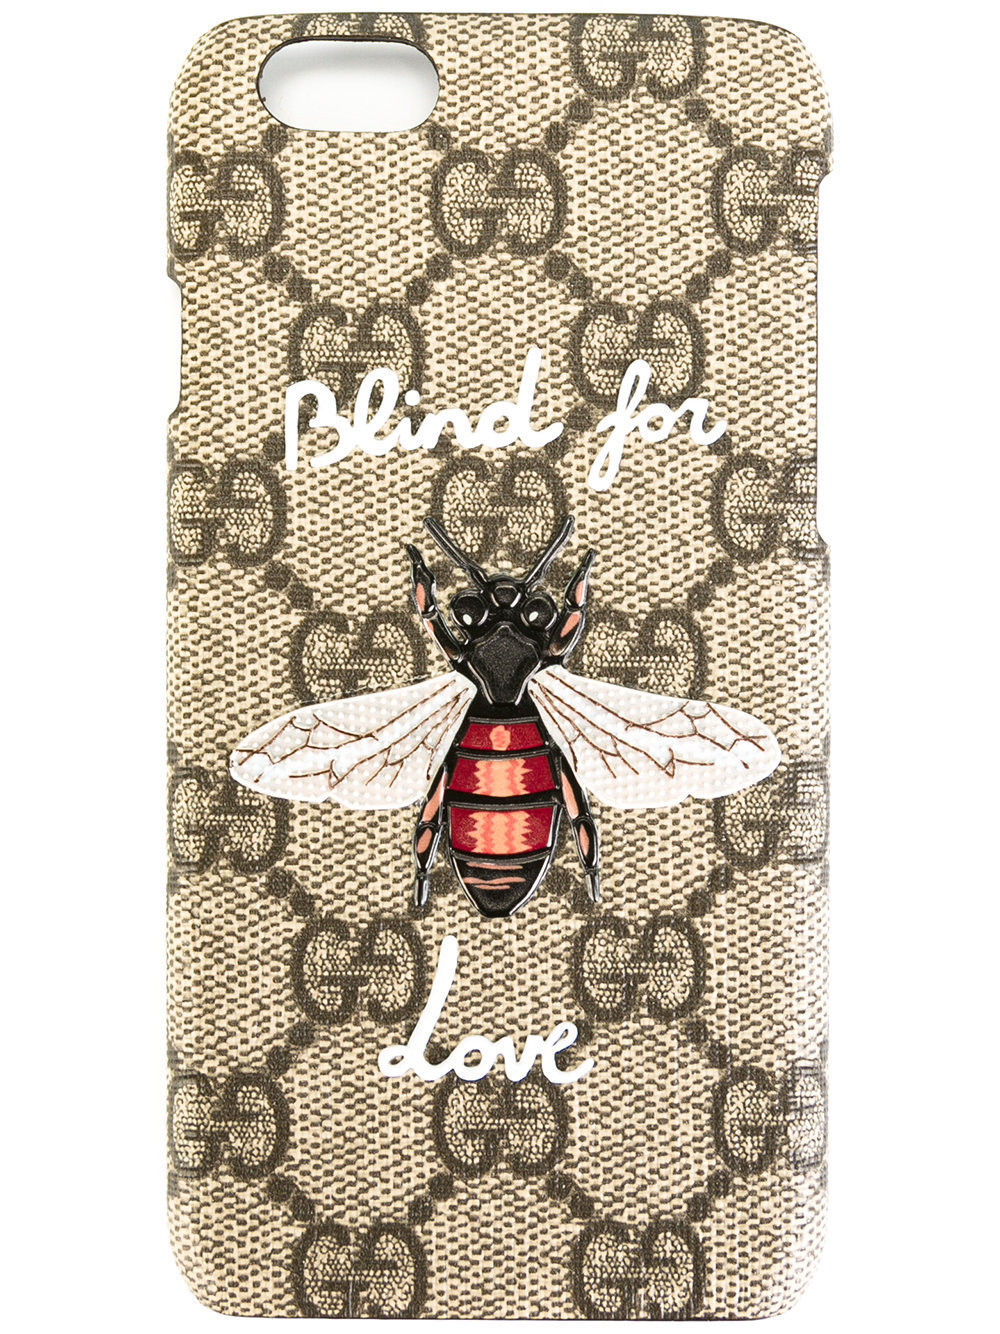 【人気ギフト】GUCCI Blind for Love iPhone 6/6s カバー